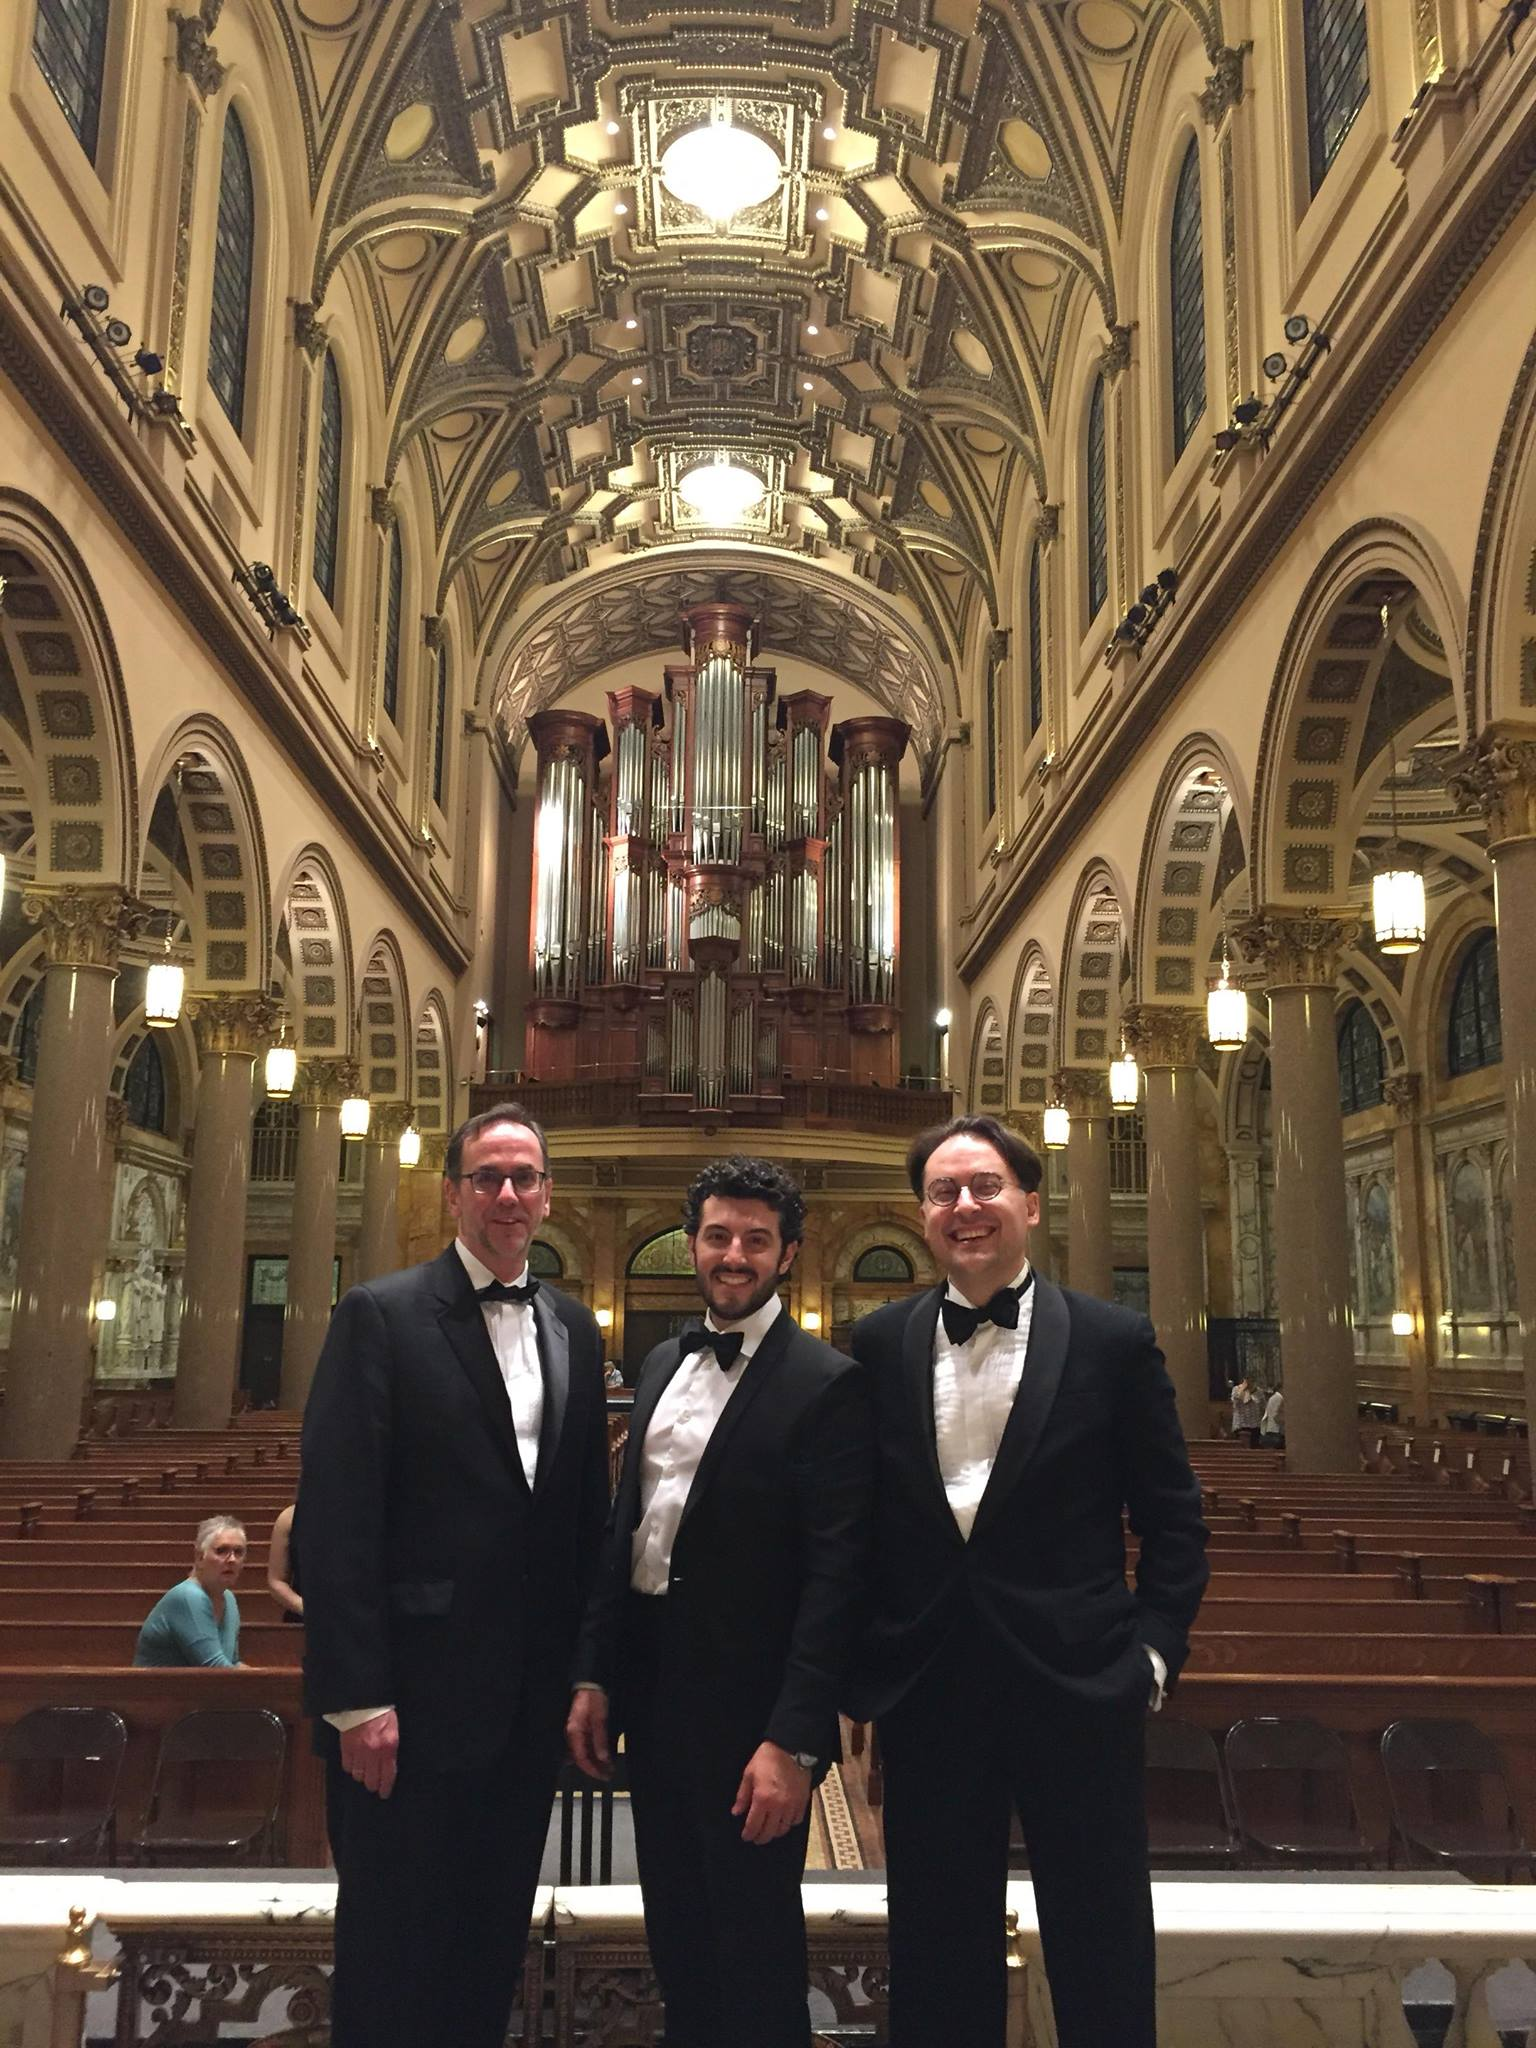 Trumpet Section after the concert. With Thomas Verchot and Chris Coletti